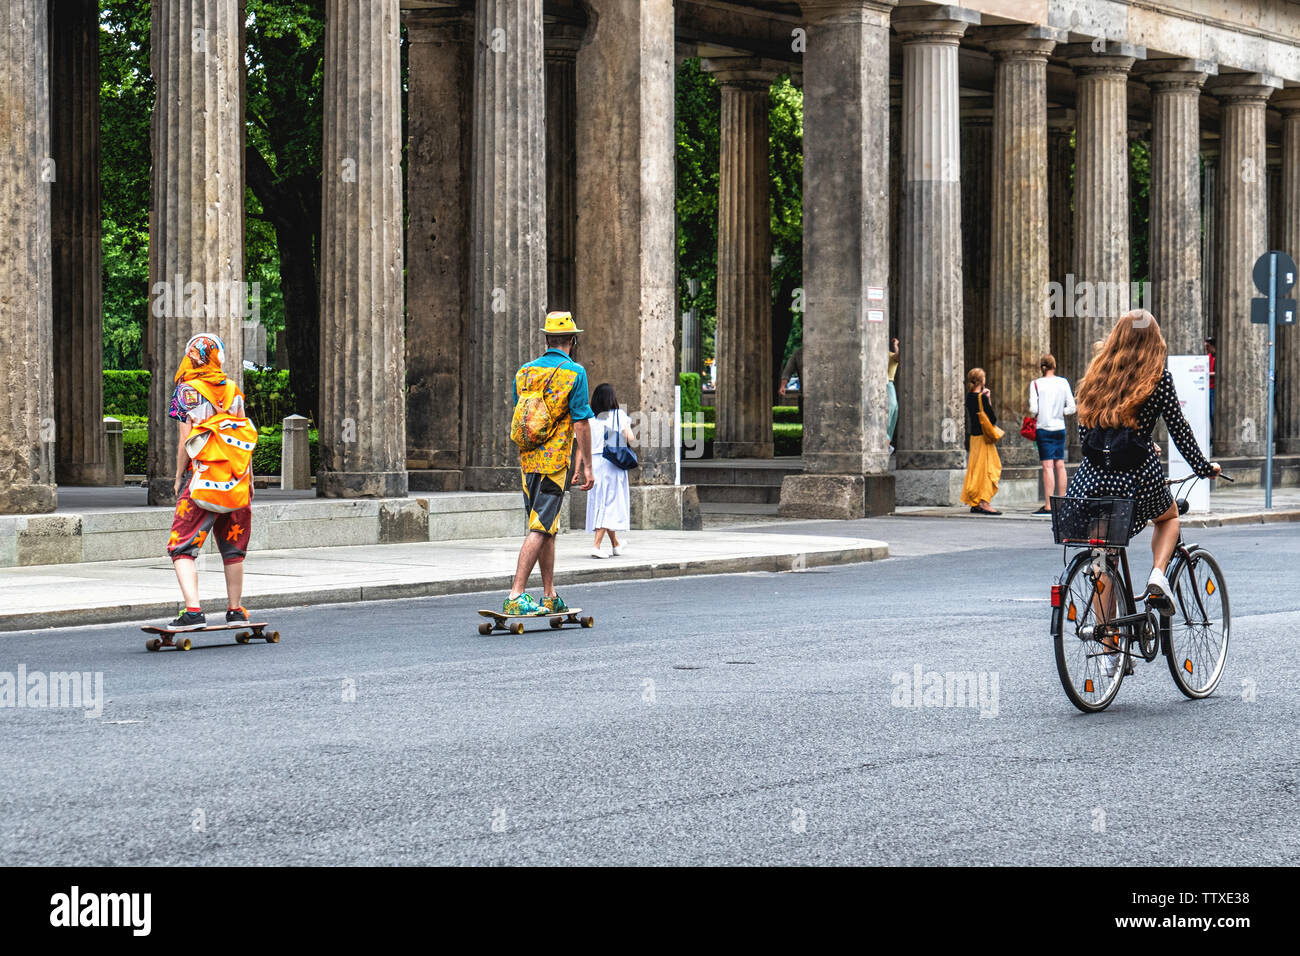 Young tourists in colourful clothing enjoying Summer, Museum Island, Mitte,Berlin. Two skate boarders & female cyclist - Stock Image